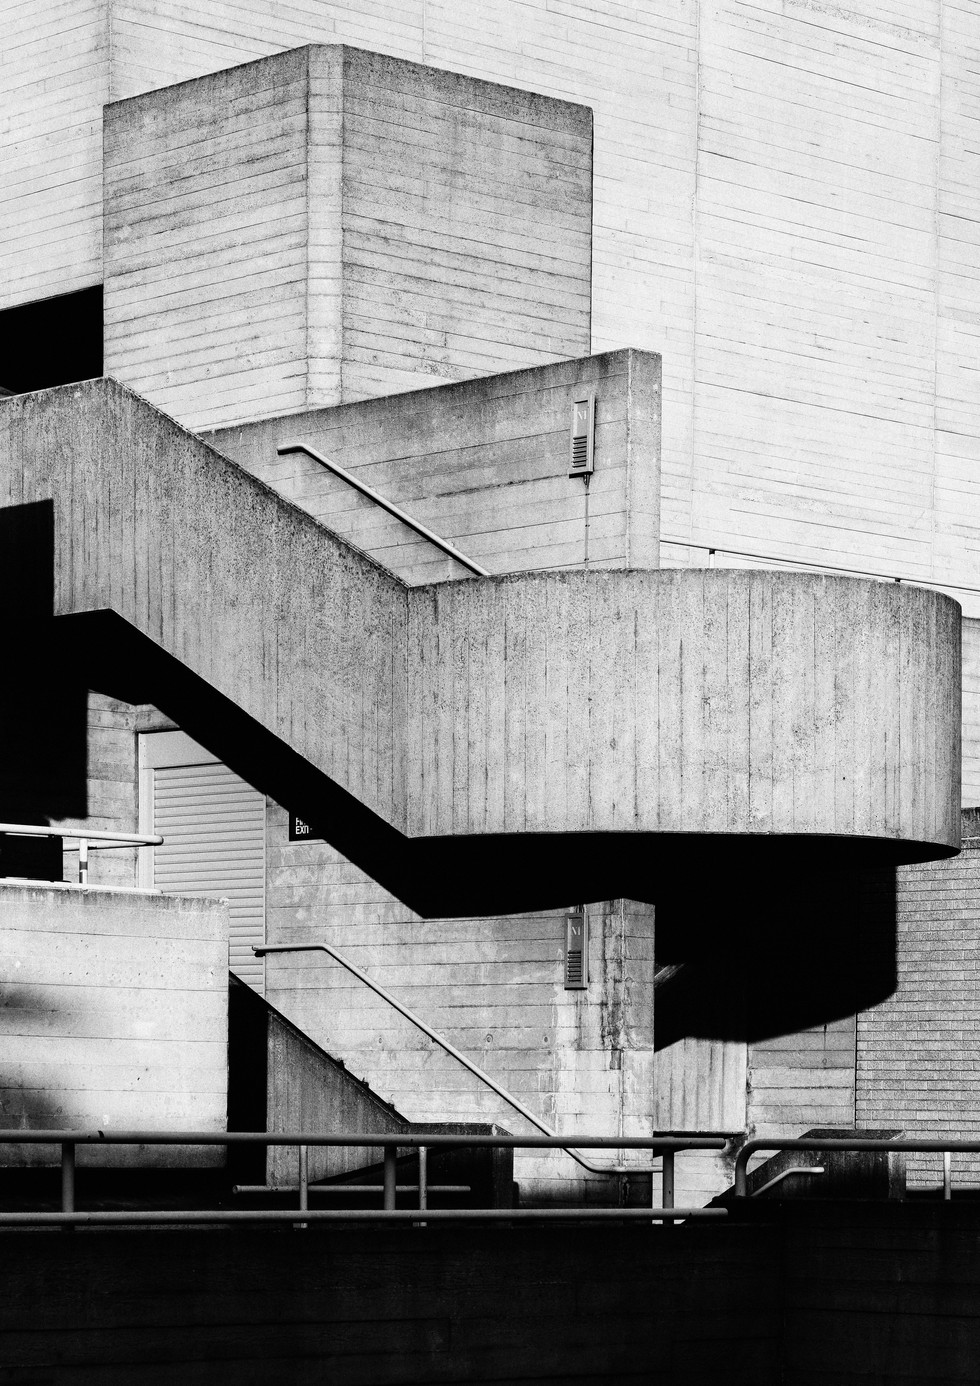 Brutalist London Architecture